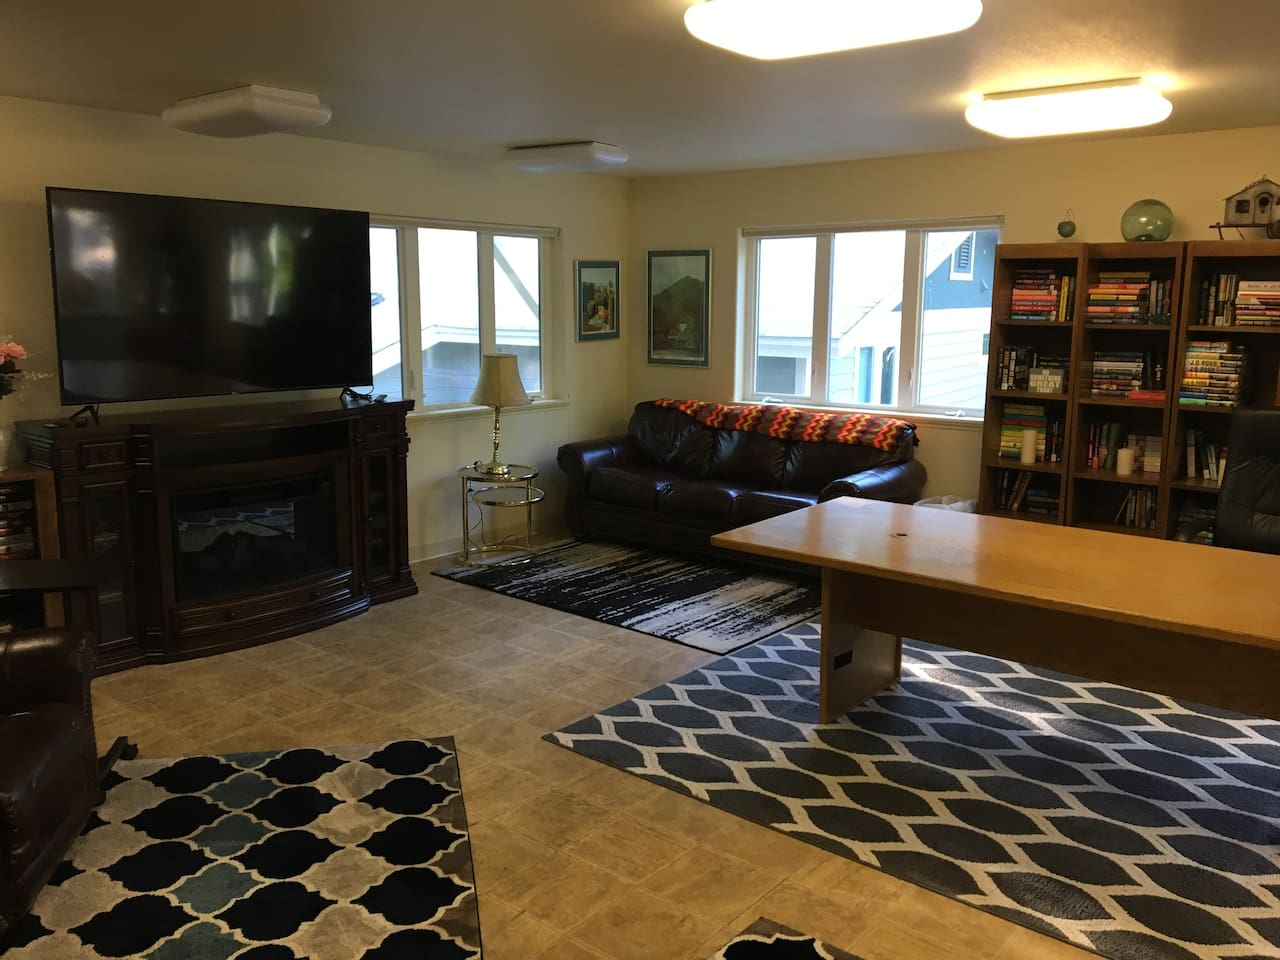 Studio Apartment over Garage, Book Lovers Paradise, Large Work Space